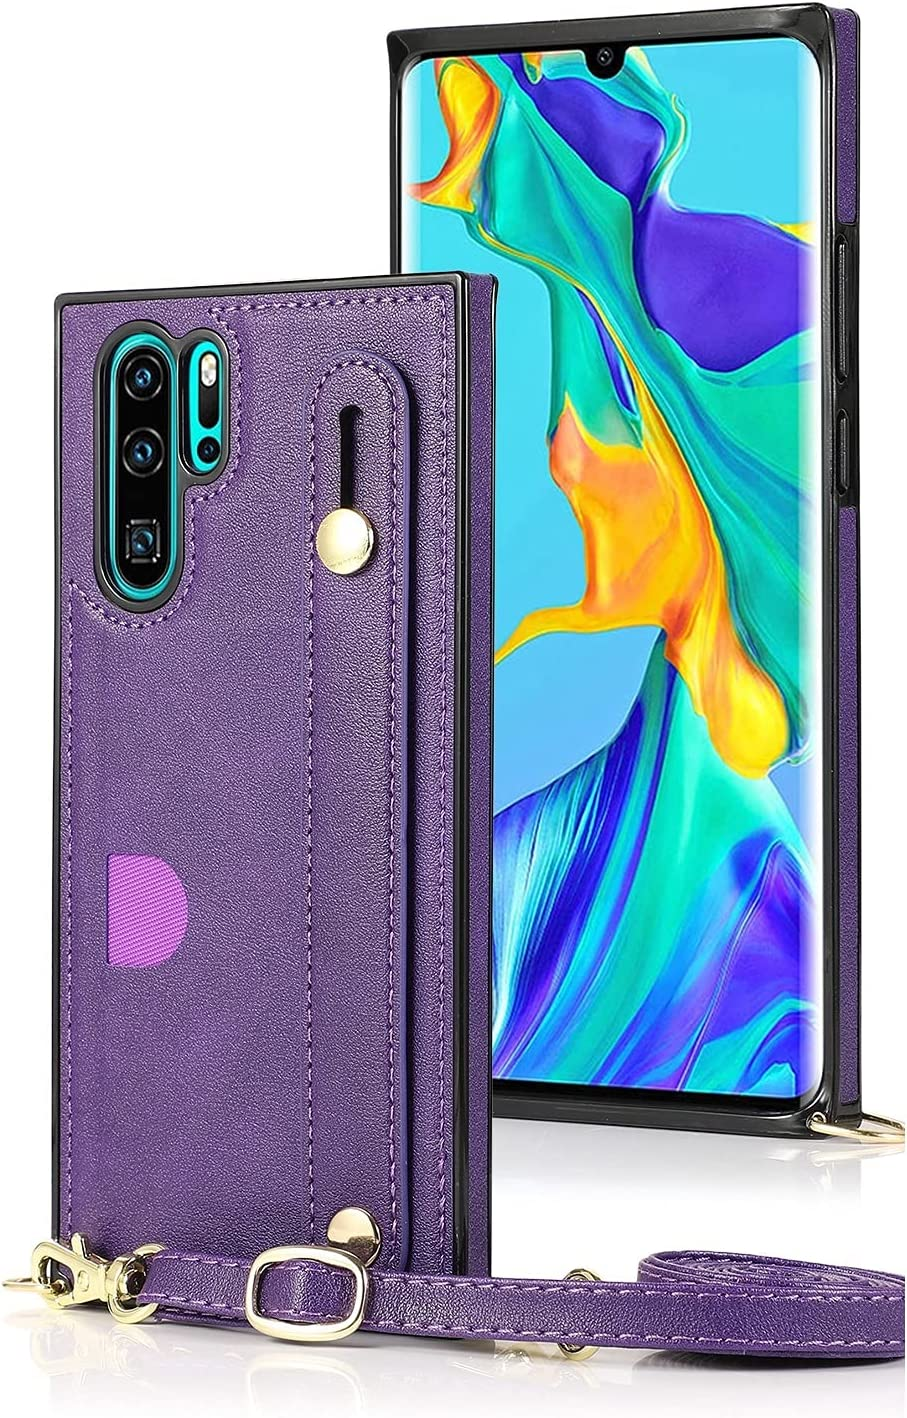 SLDiann Case for Huawei P30 Pro, Leather Case with Credit Card Slot Non-Slip Buckle Holder/Crossbody Long Lanyard, Shockproof Leather TPU Case Cover for Huawei P30 PRO (Color : Purple)